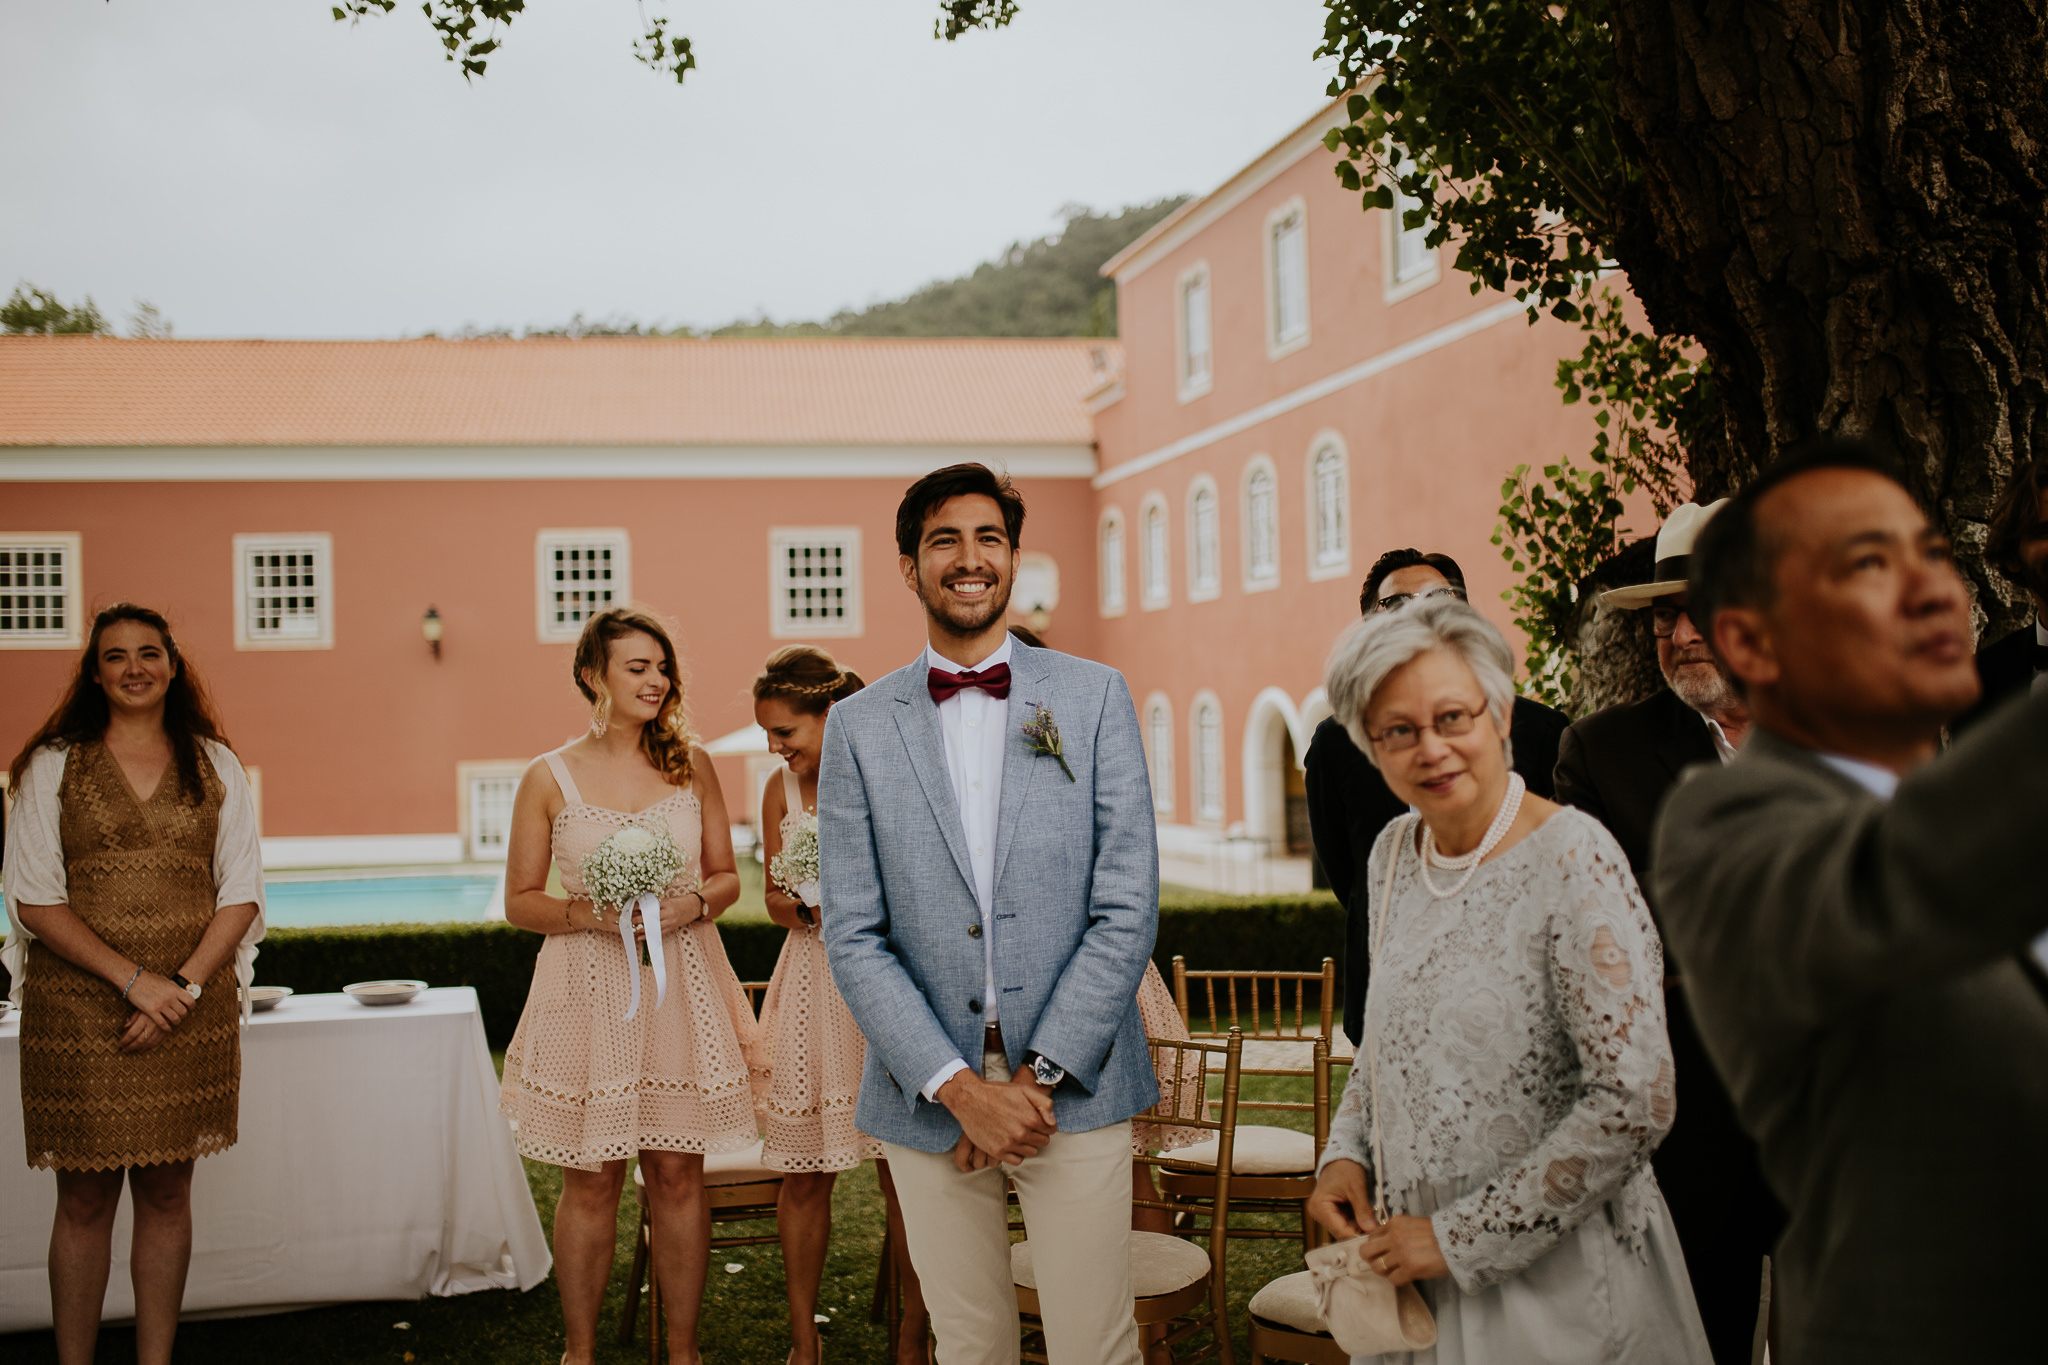 romina_thomas_destination_wedding_photography_fotografia_de_casamento_lisbon_sintra_penha_longa_resort-25